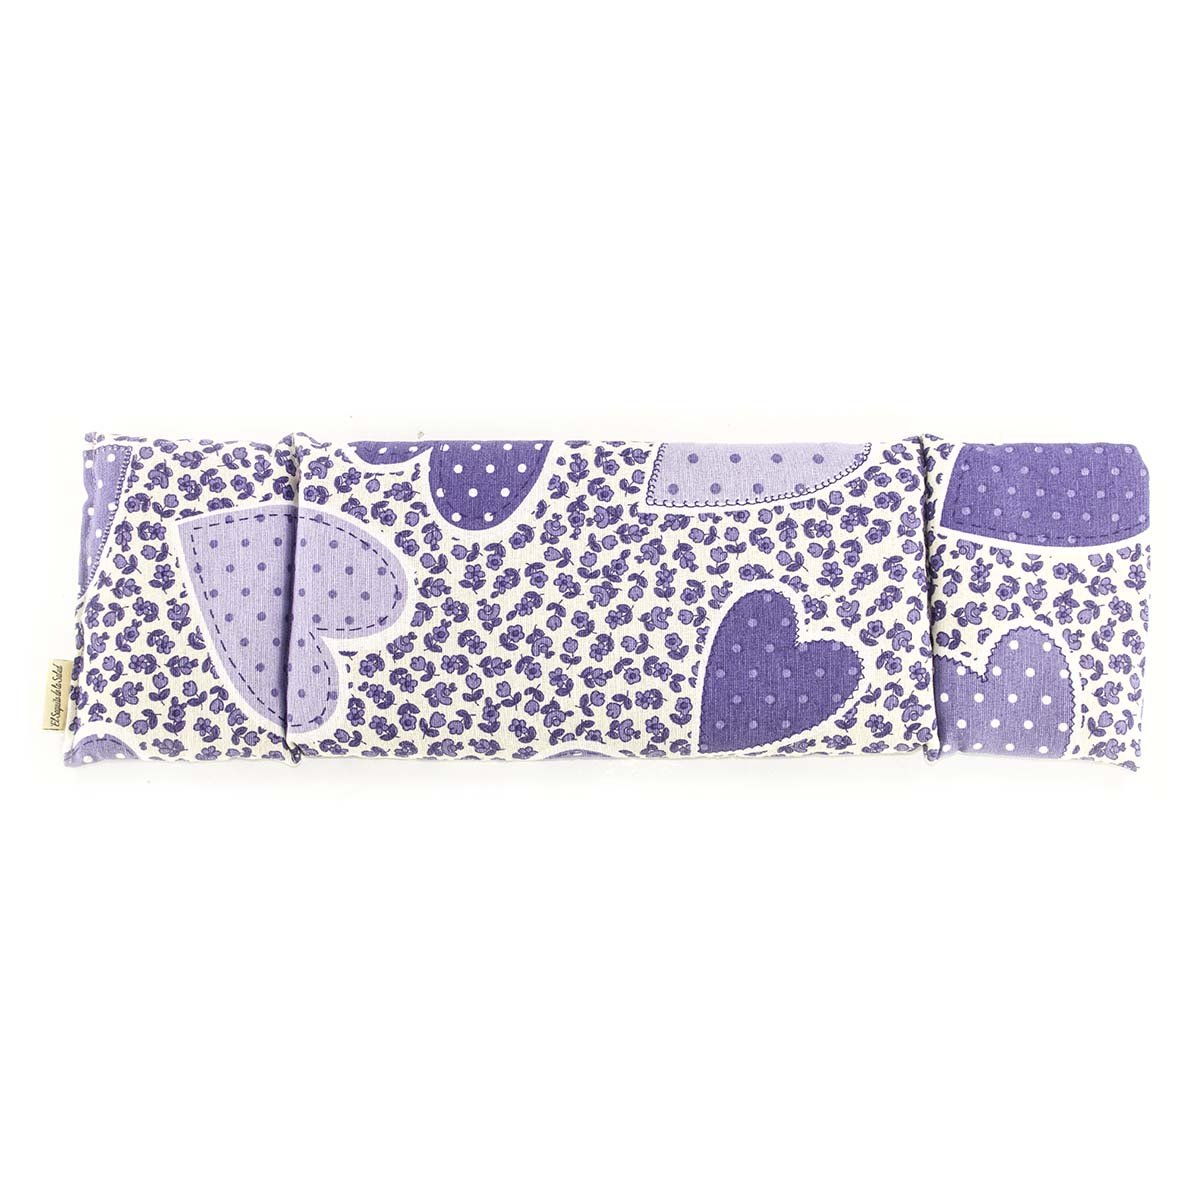 Seed bag with Lavender multi-coloured fabric with lilac flowers pattern 23 cm Orange Blossom or Rosemary Aromatic heating pad